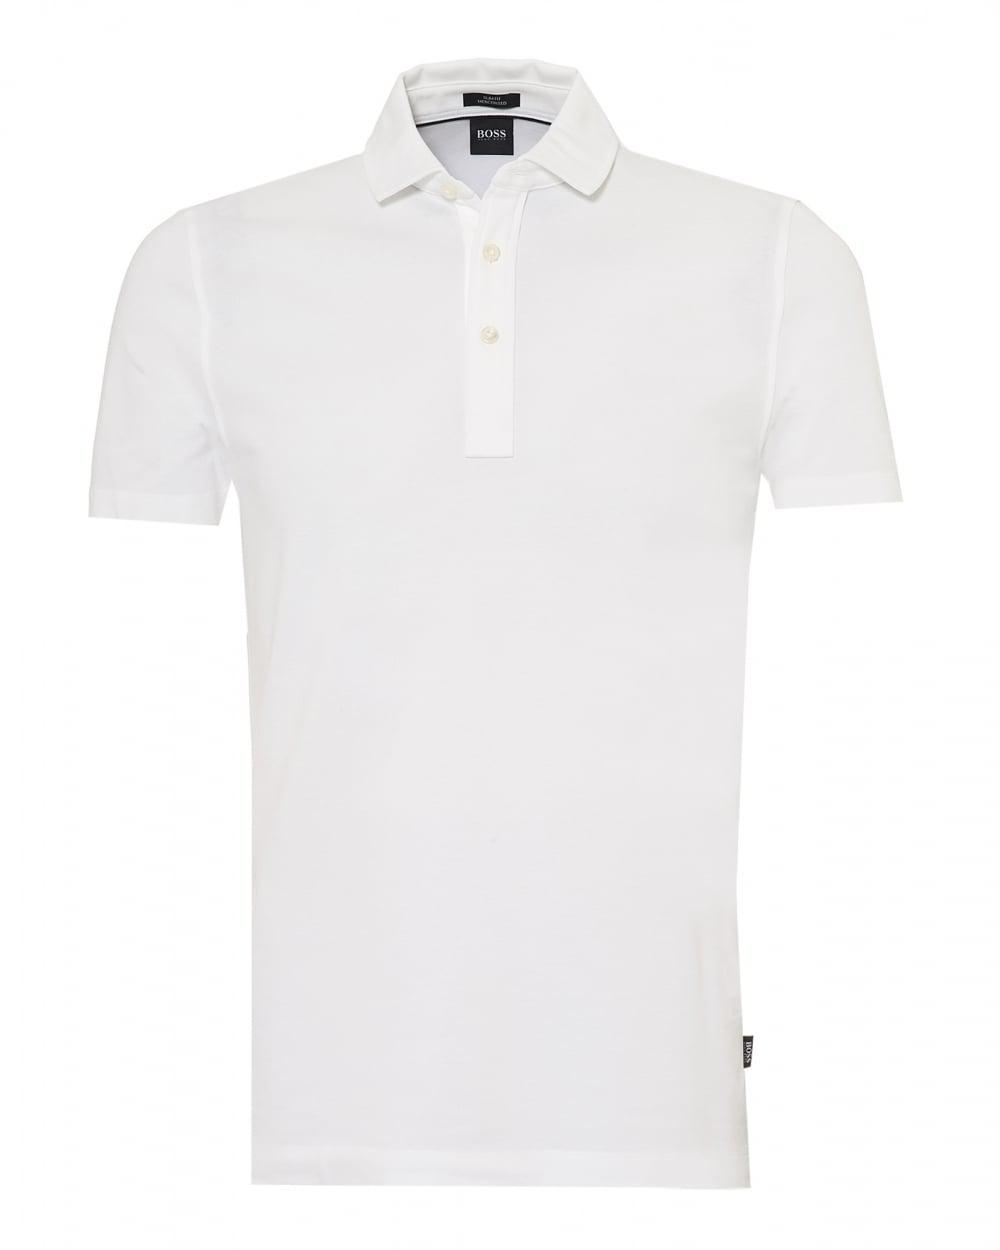 Find great deals on eBay for black and white ralph lauren polo. Shop with confidence.